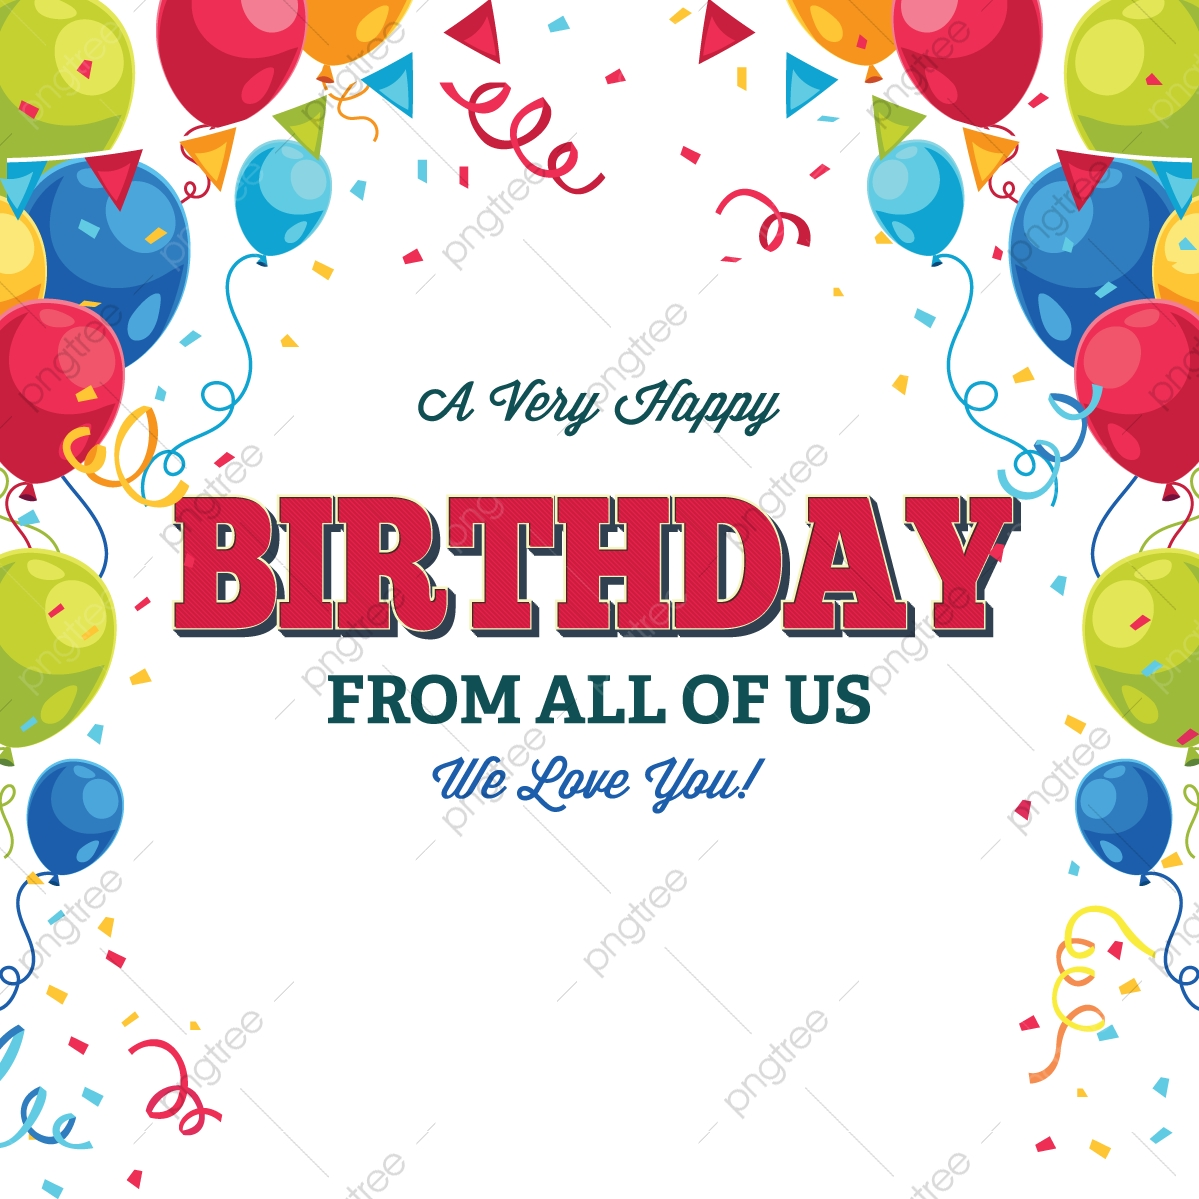 Birthday Wishes Poster, Birthday, Party, Happy PNG And